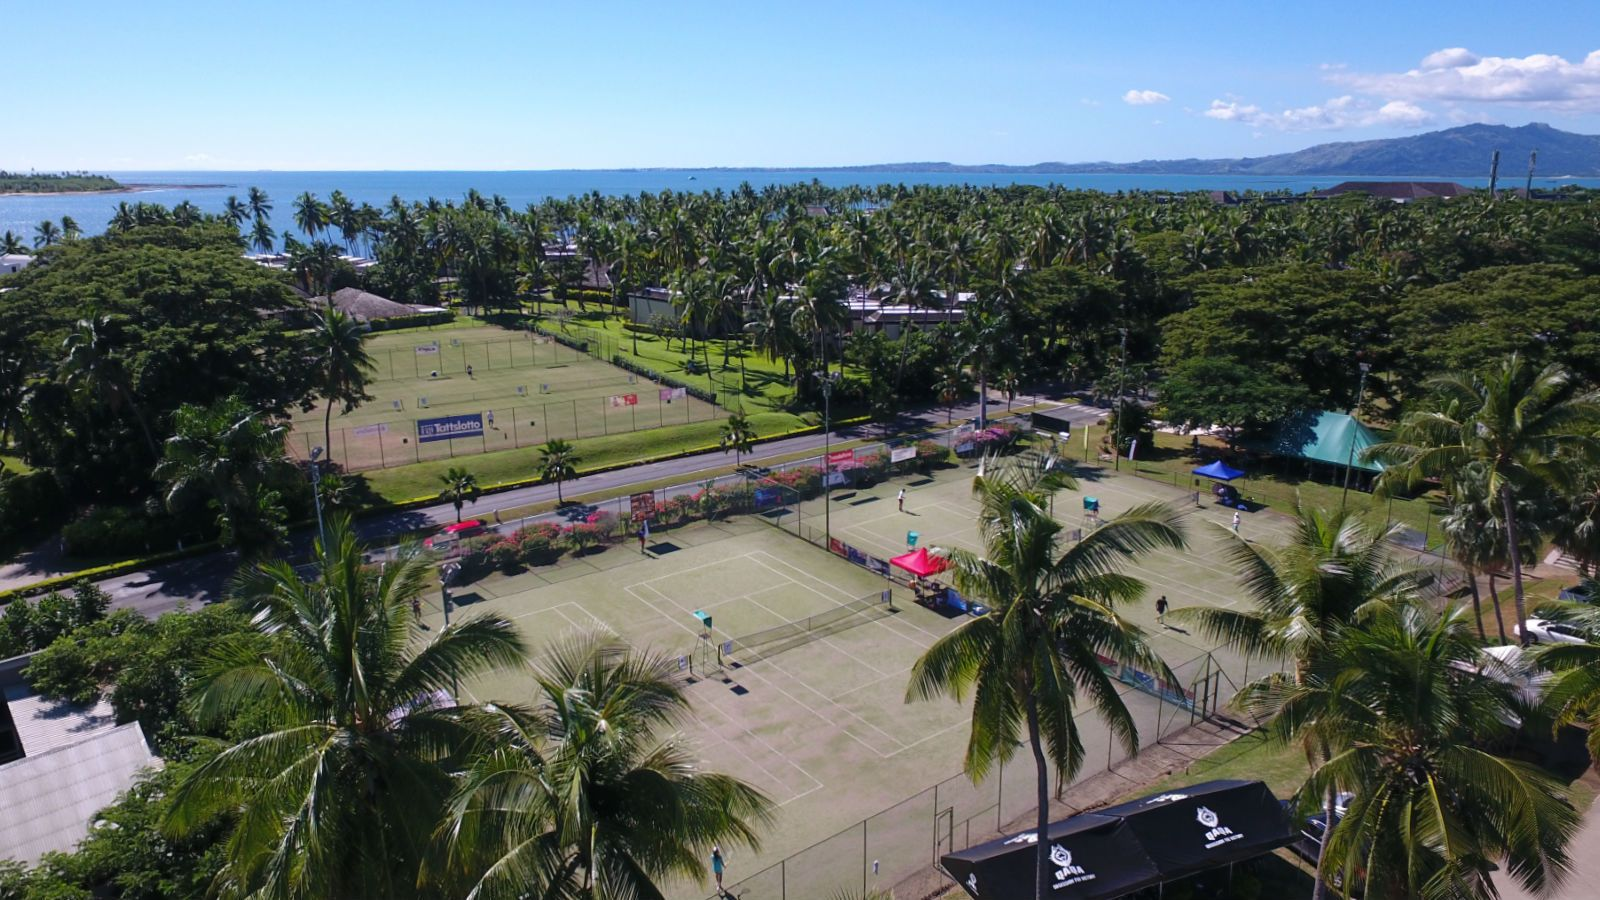 Tennis Field Fiji